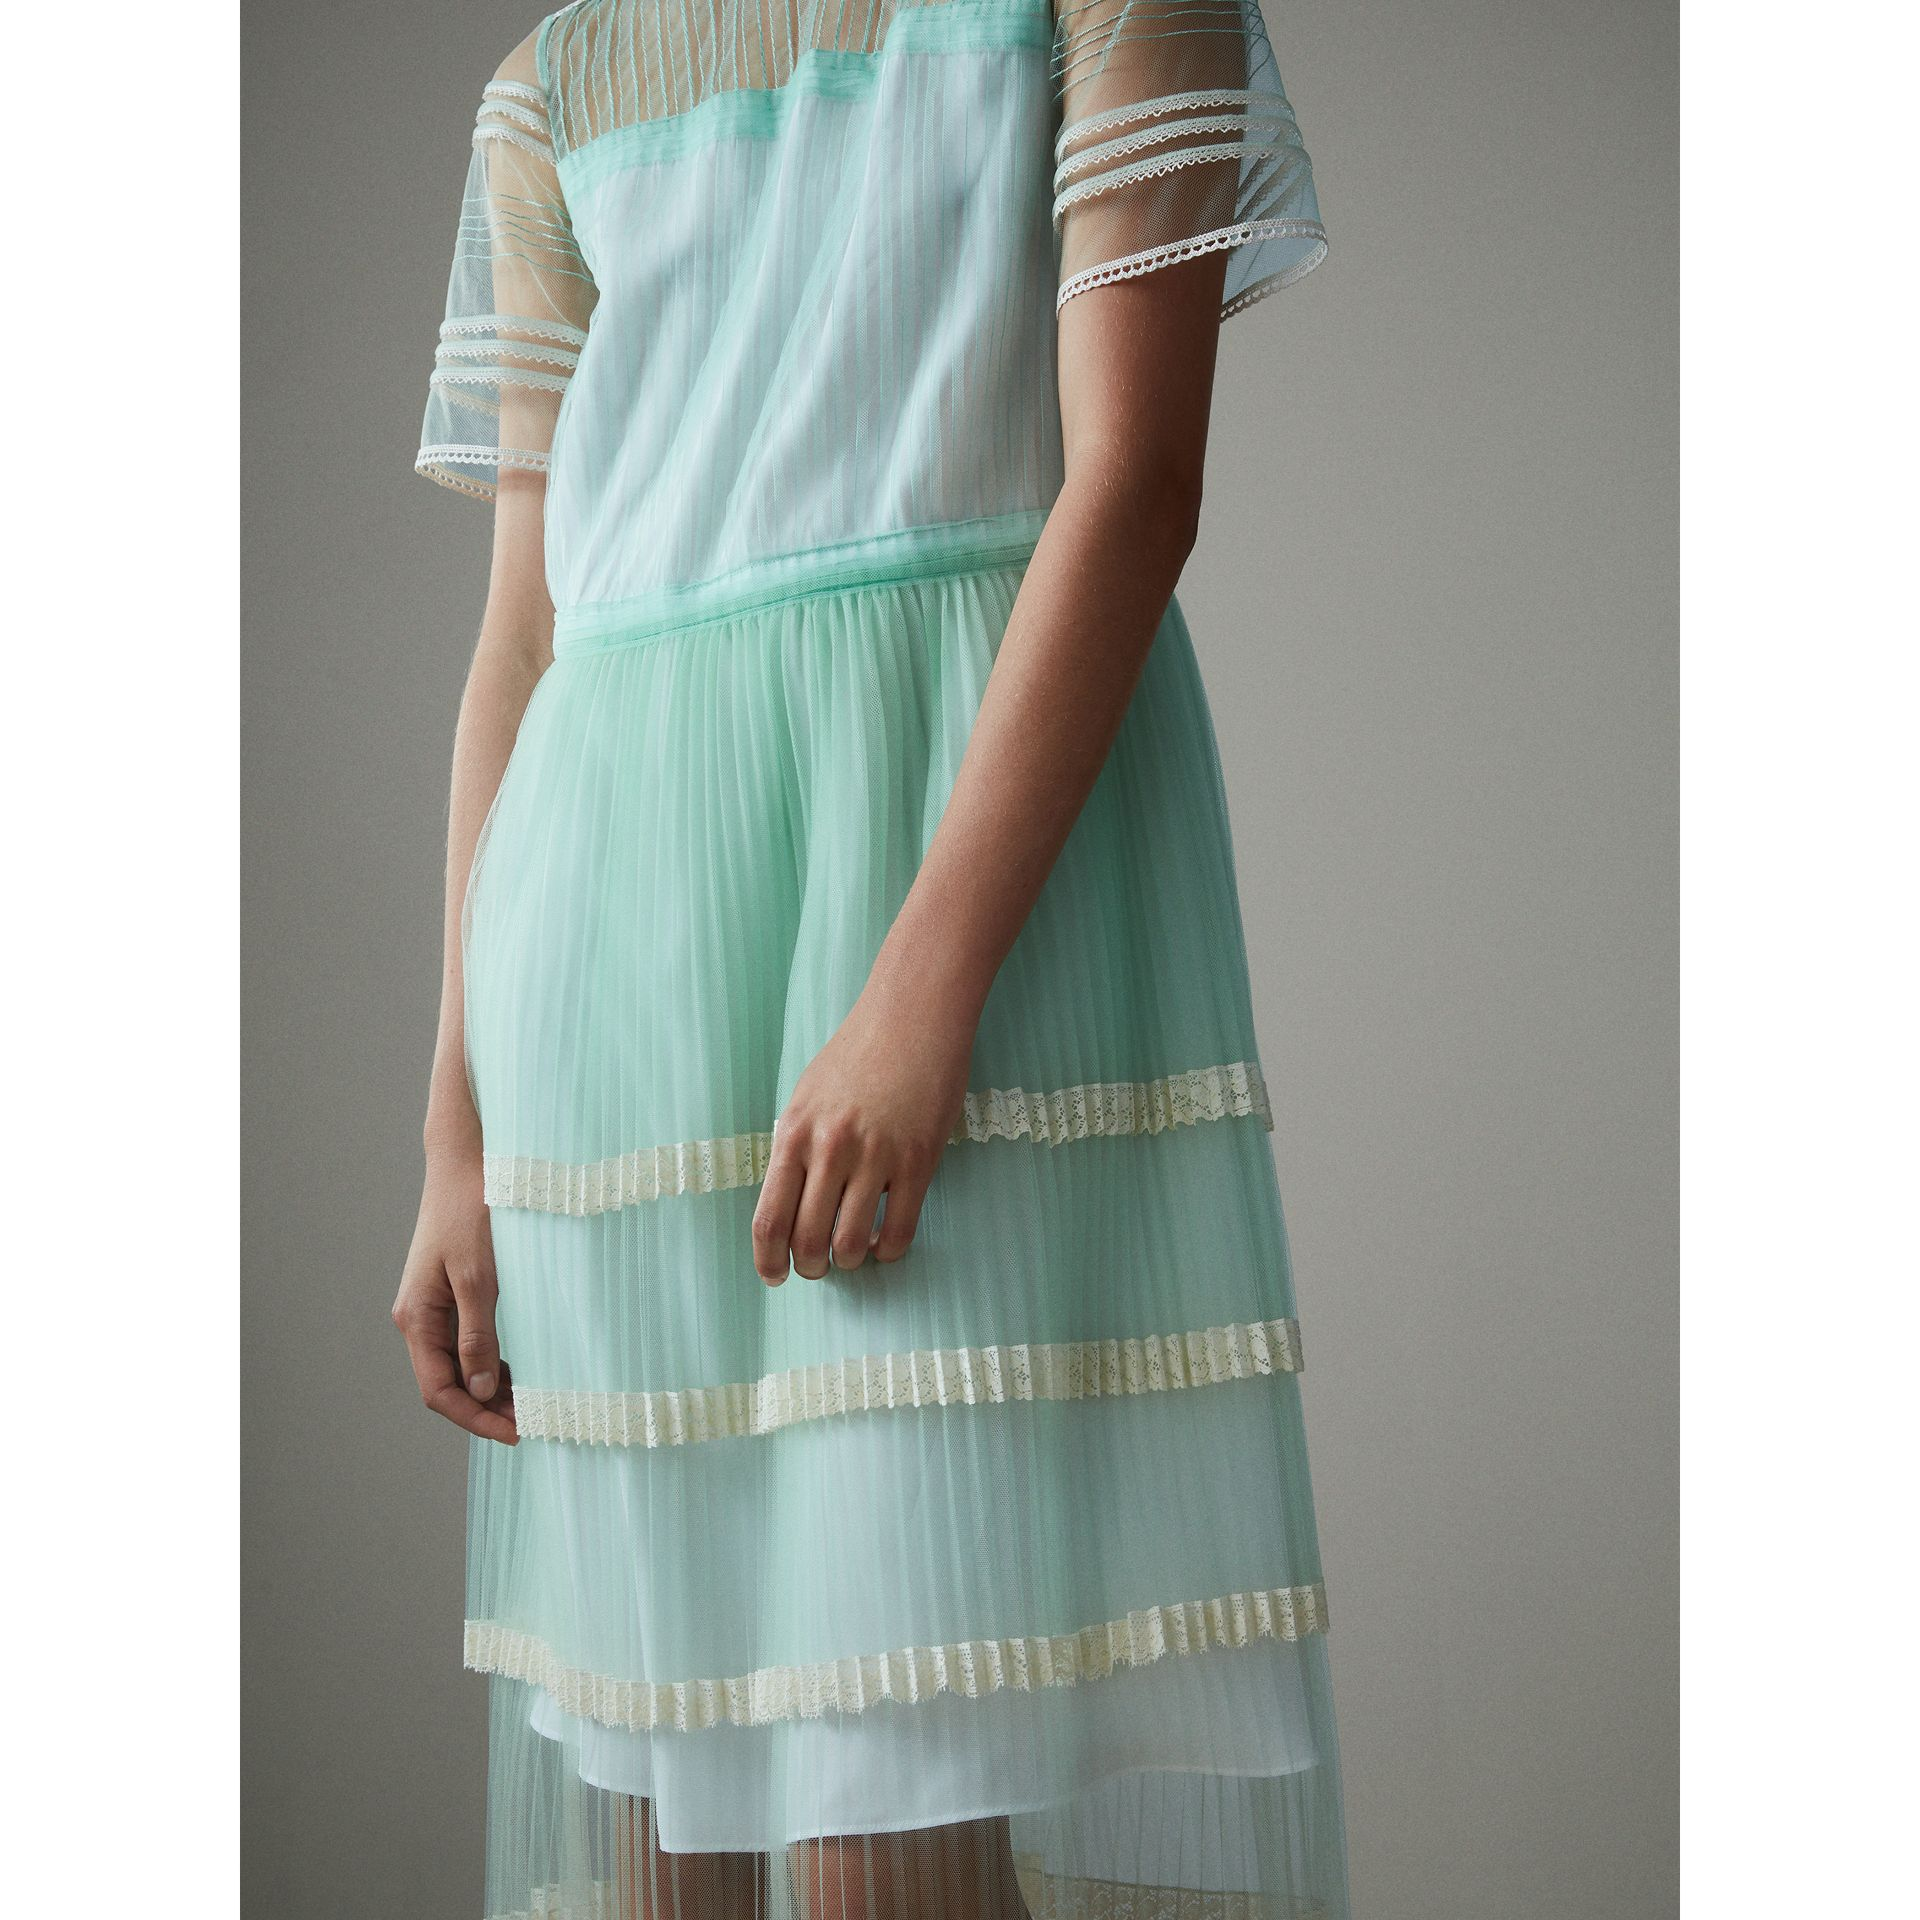 English Lace Trim Pleated Tulle Dress in Light Mint - Women | Burberry Canada - gallery image 5